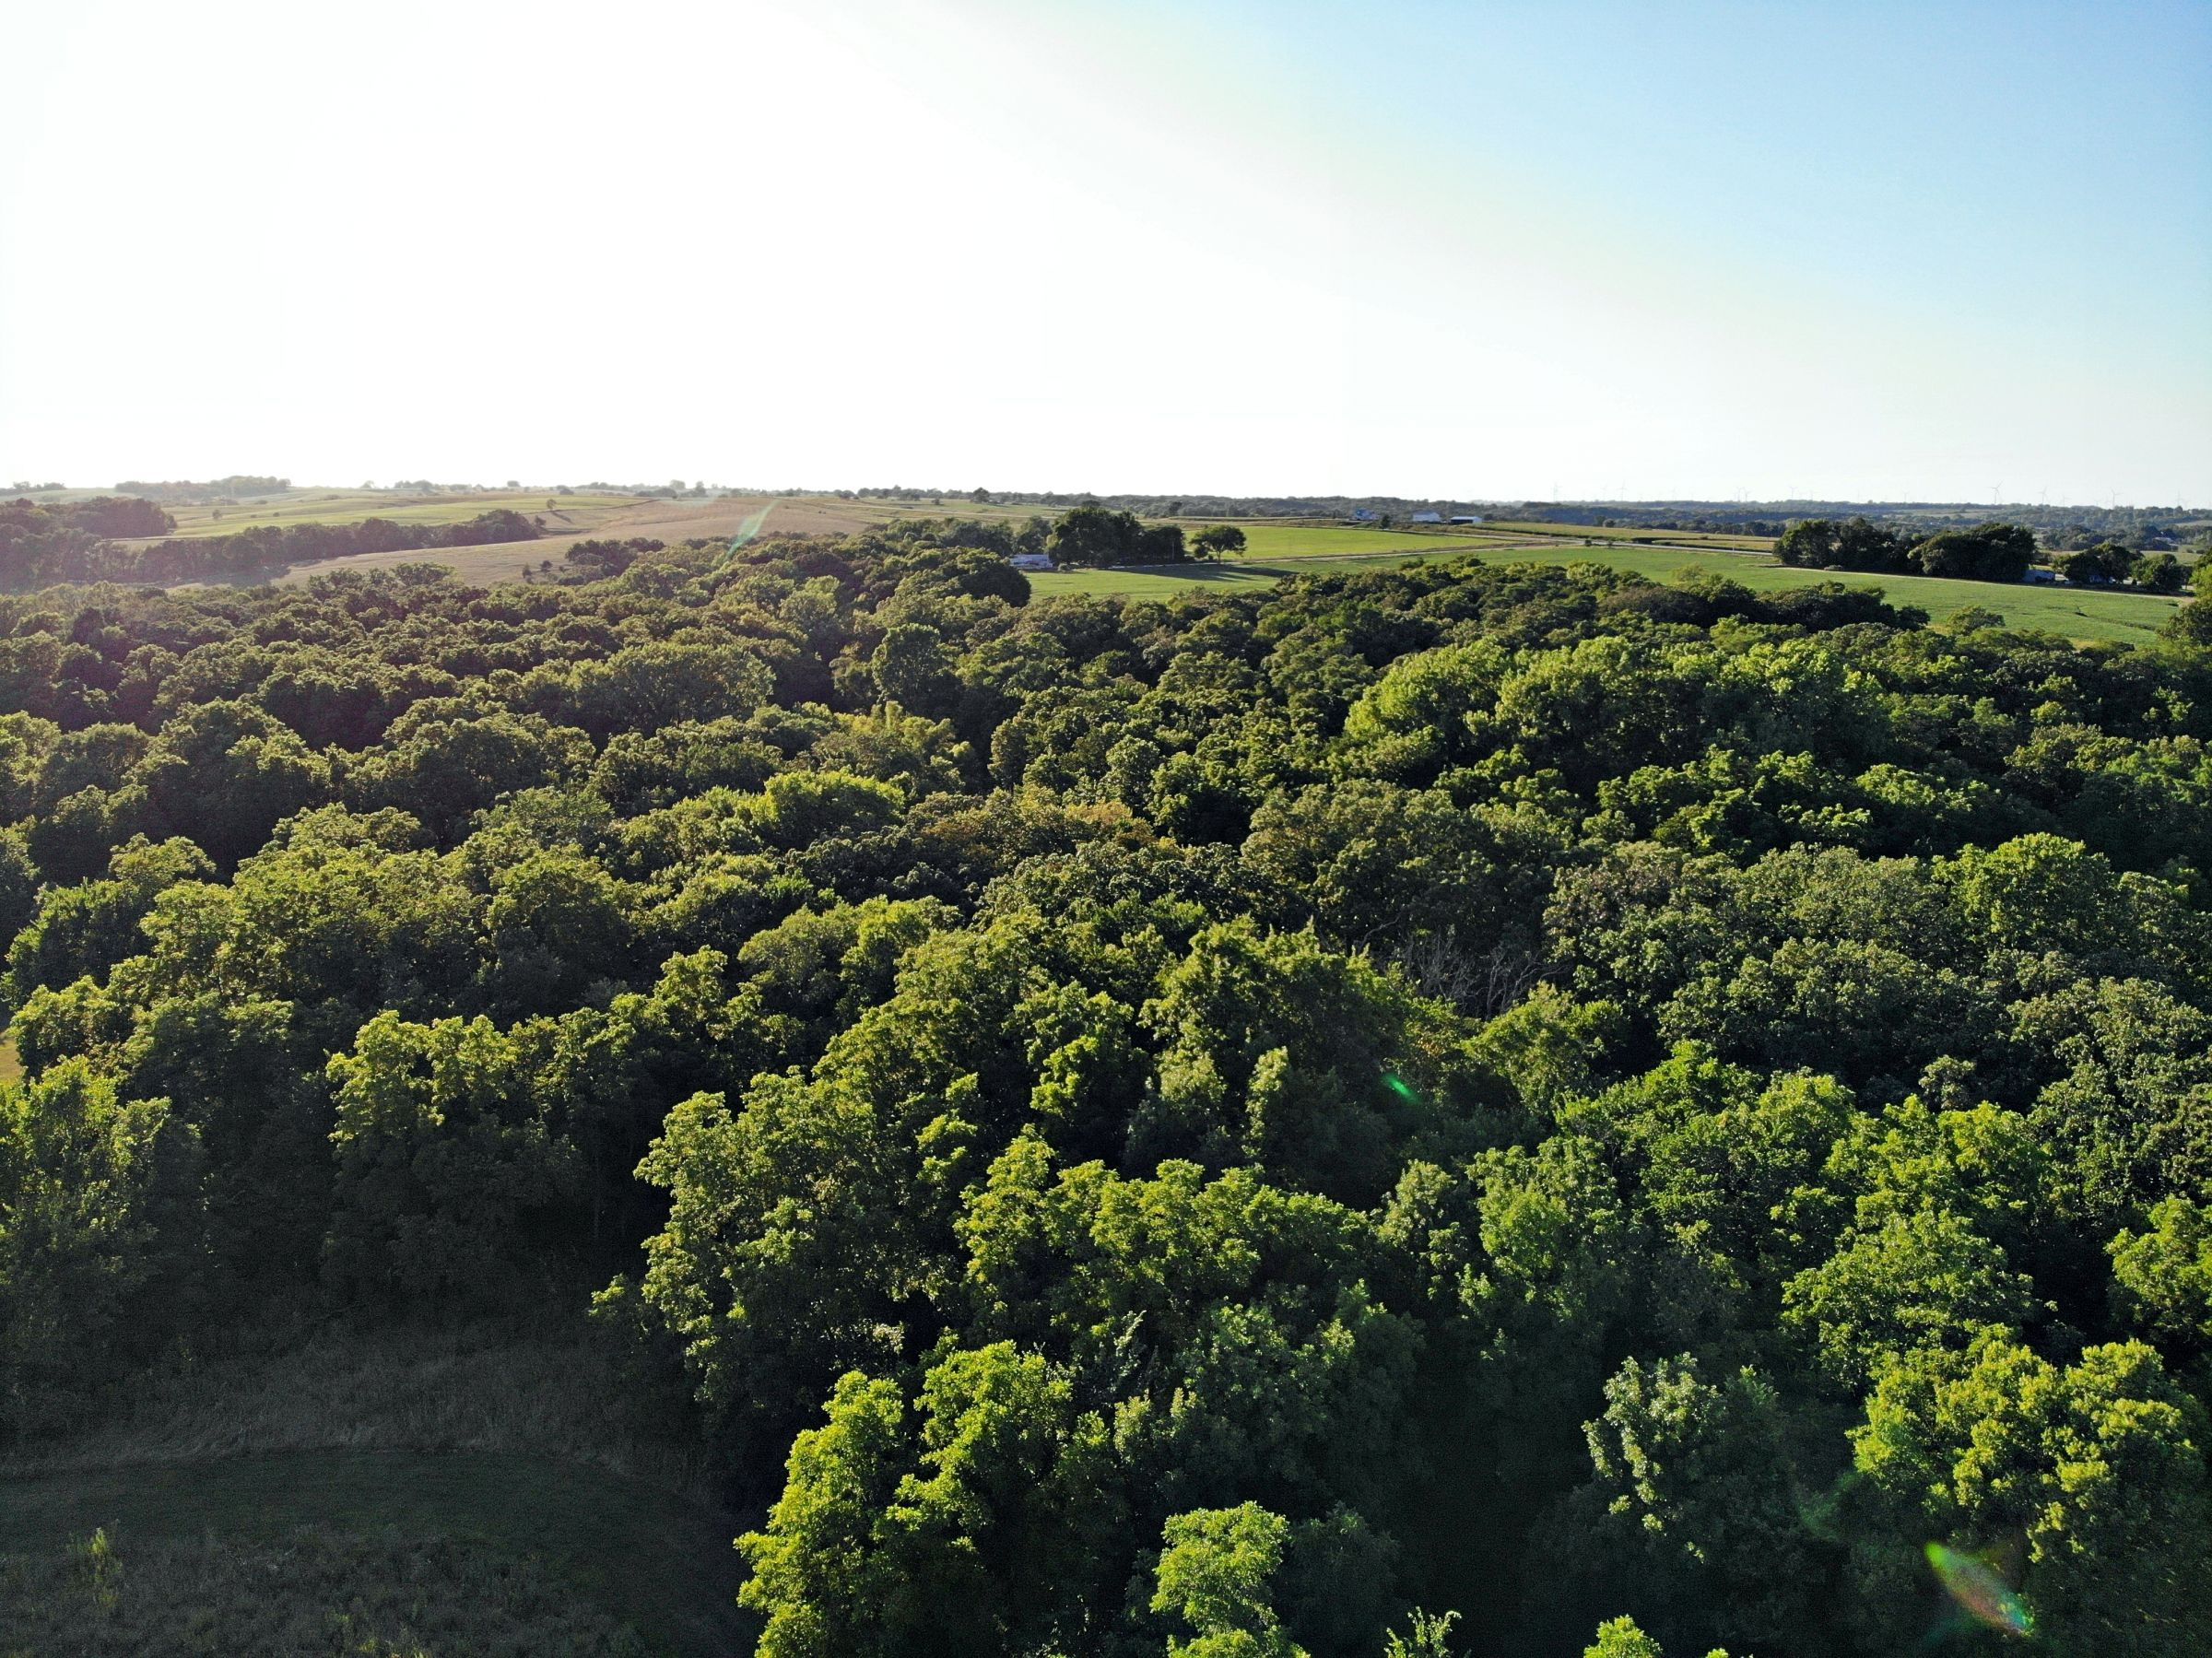 residential-land-madison-county-iowa-106-acres-listing-number-15123-0-2020-08-24-023312.JPG